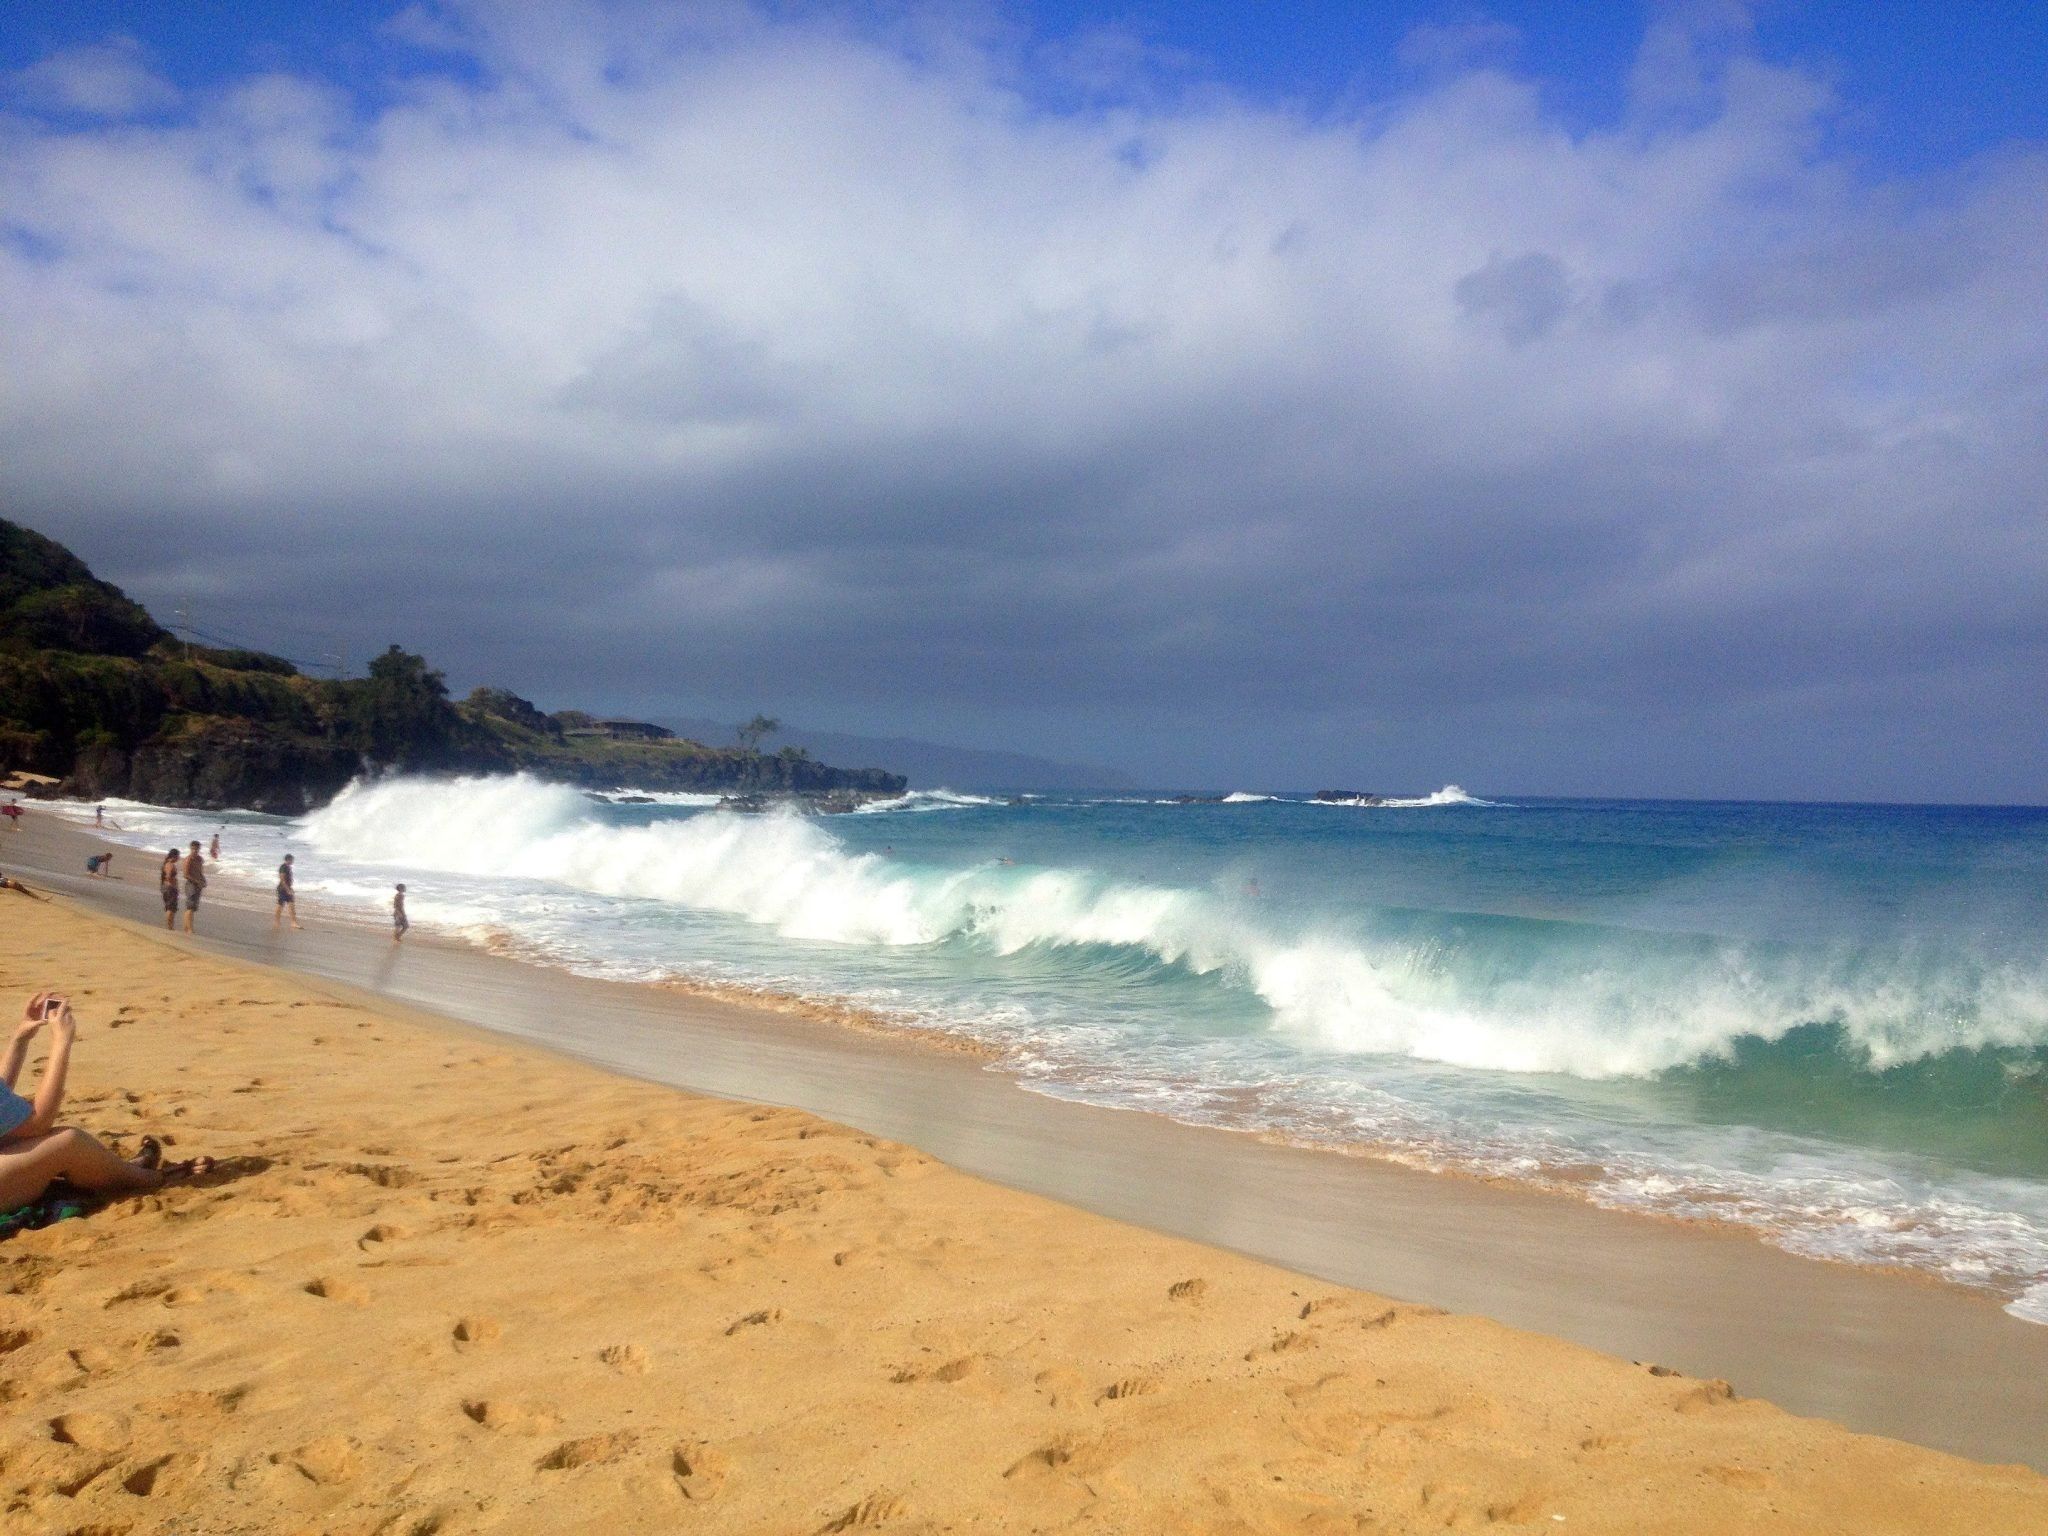 North Shore - Honolulu, Oahu, Hawaii